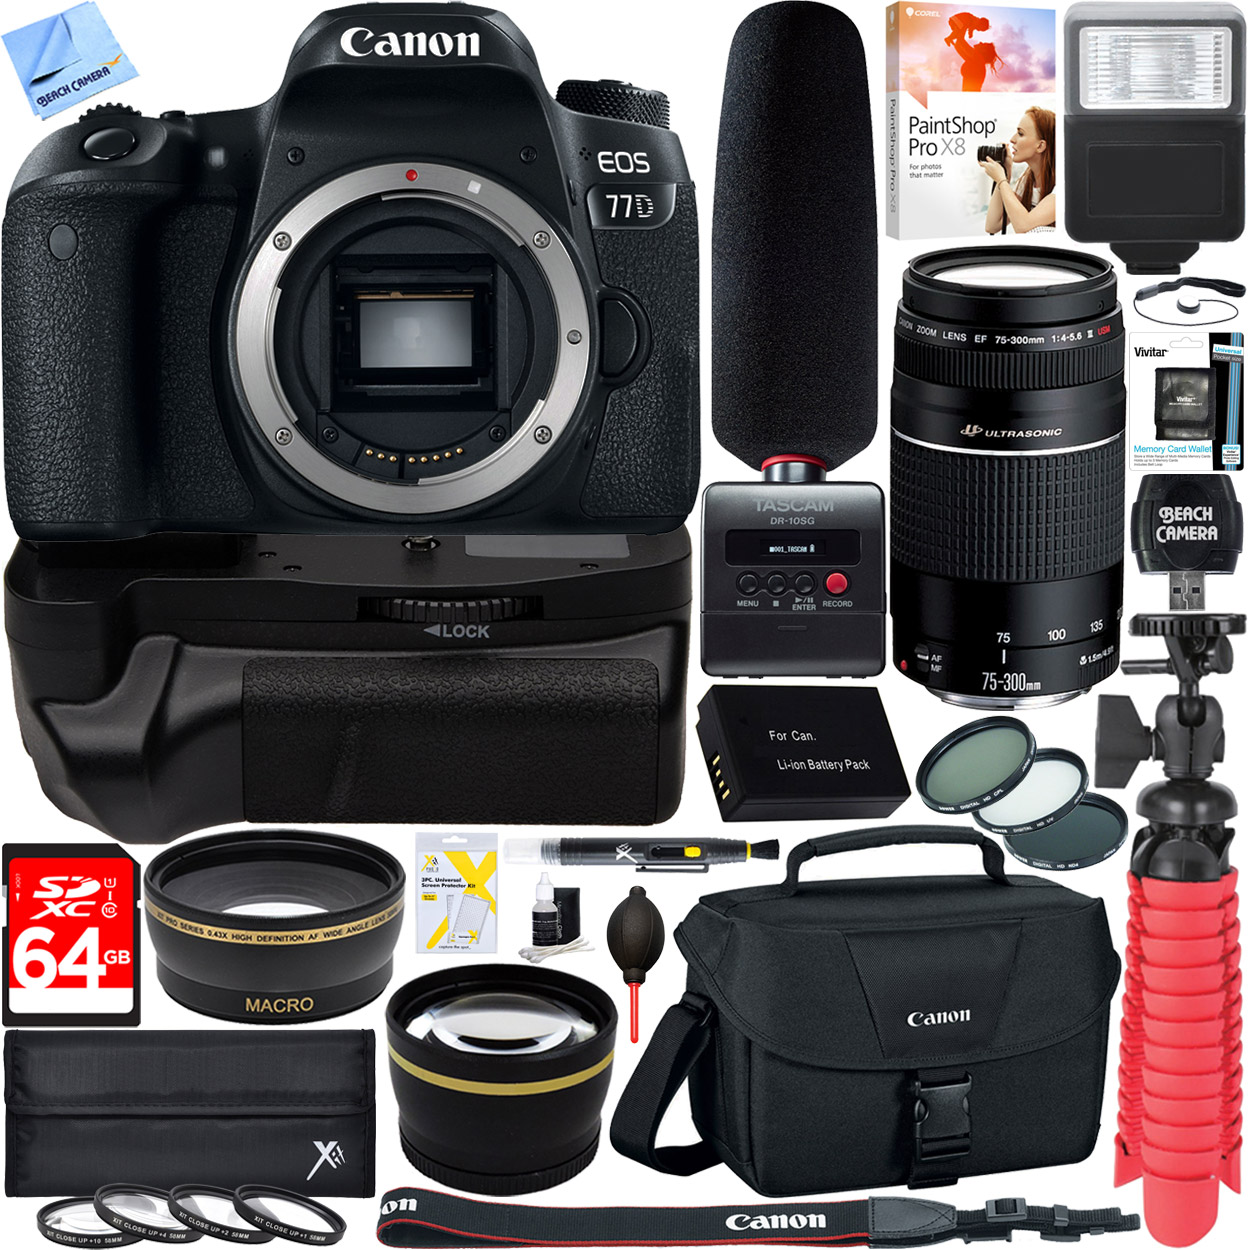 Canon EOS 77D Digital SLR Camera + EF 75-300mm F4-5.6 III Telephoto Zoom Lens Tascam 64GB Video Creator Kit by Canon